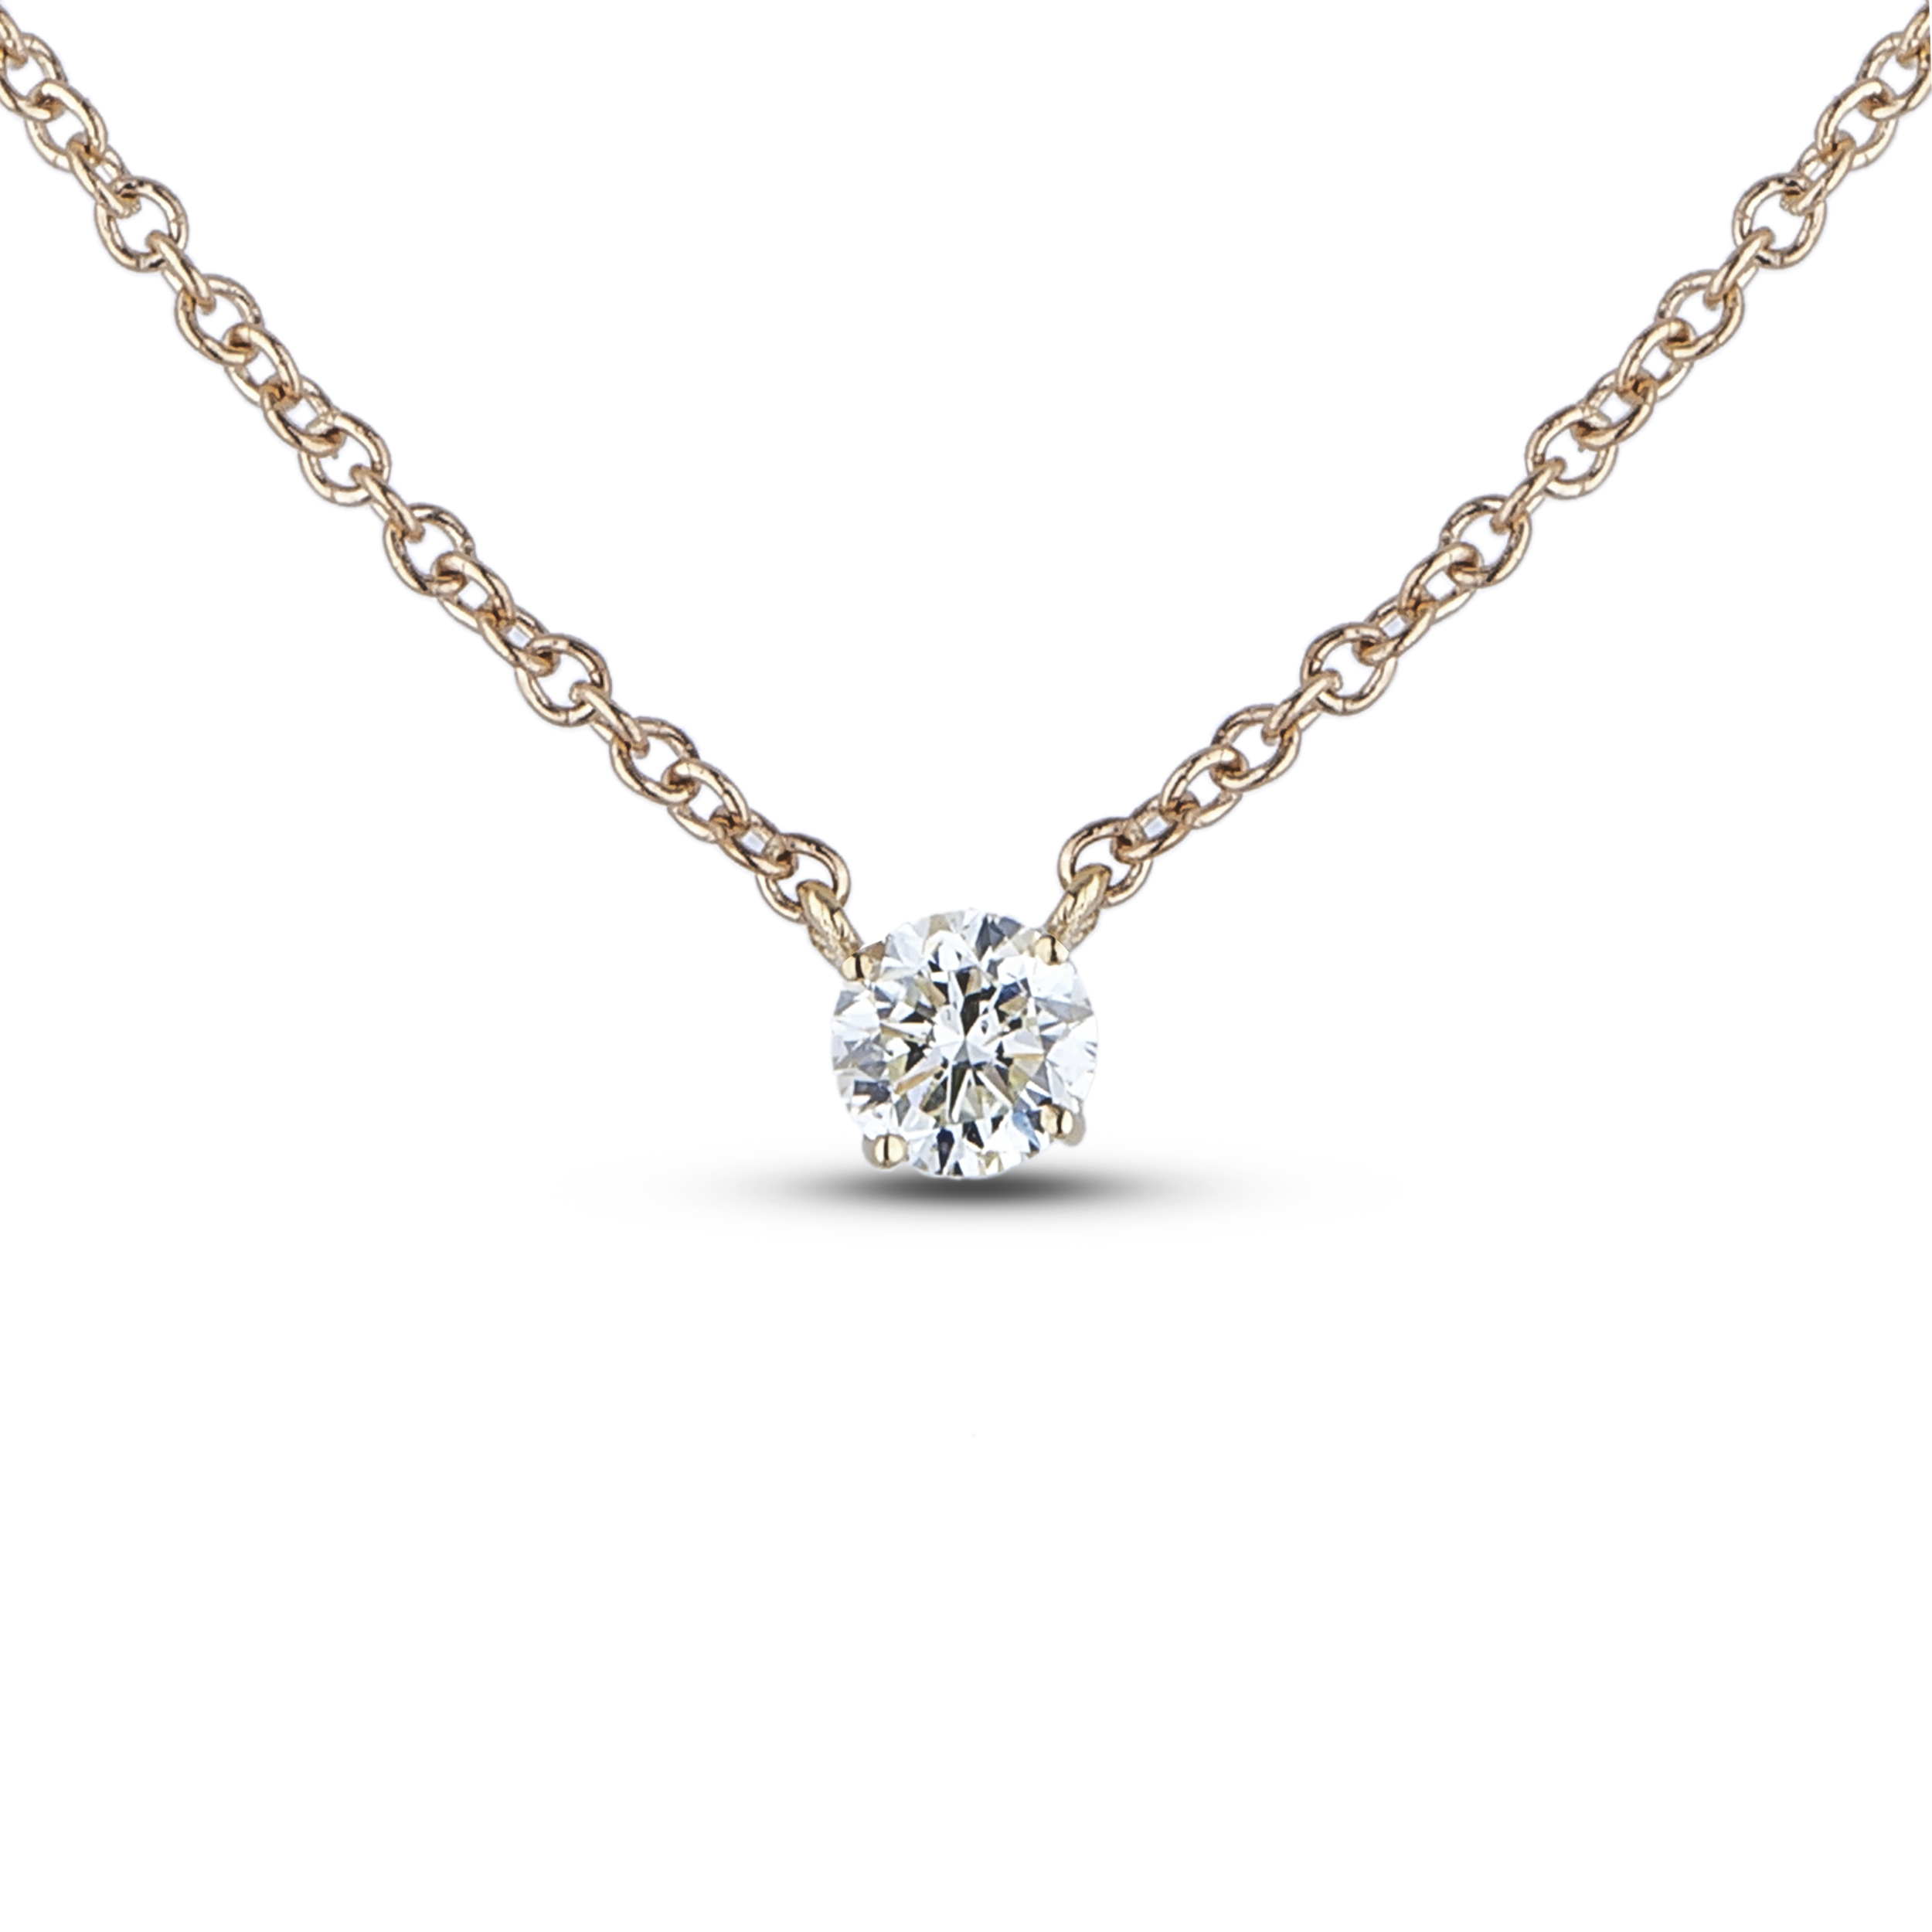 Diamond Solitaire Pendants SJ-MX-ND2658 (Pendants)